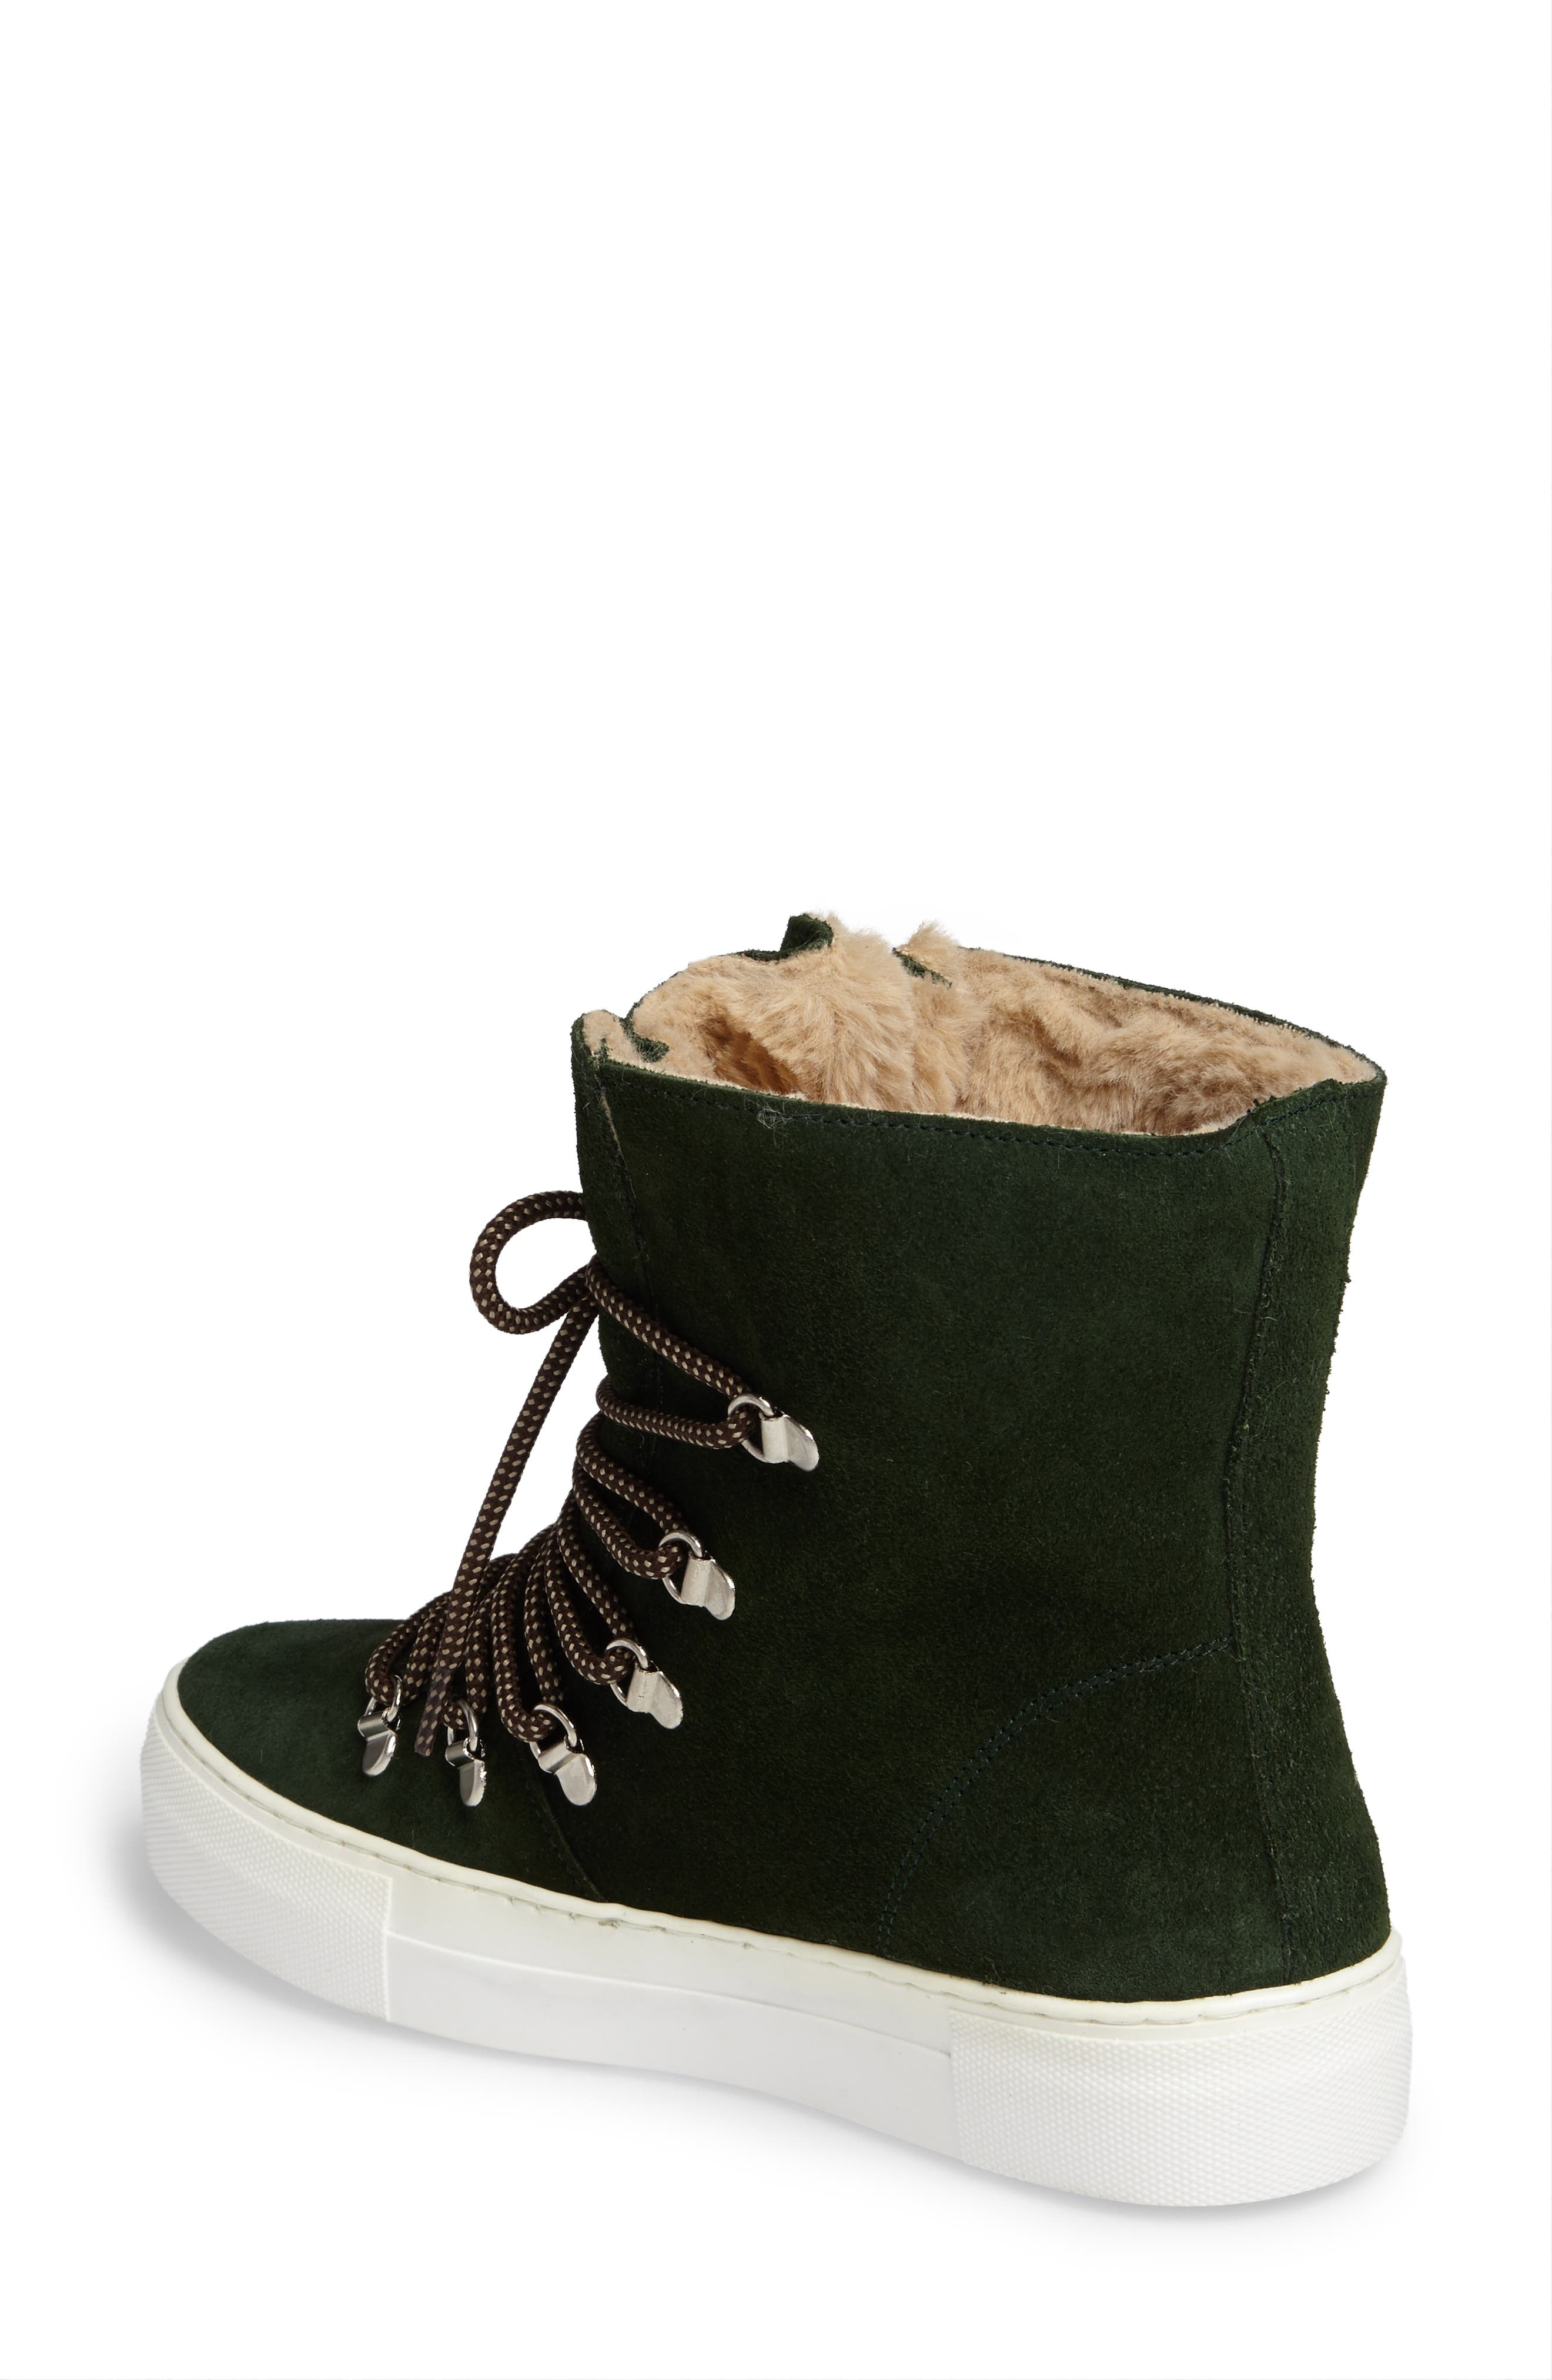 Cimone High Top Sneaker,                             Alternate thumbnail 2, color,                             Green Suede